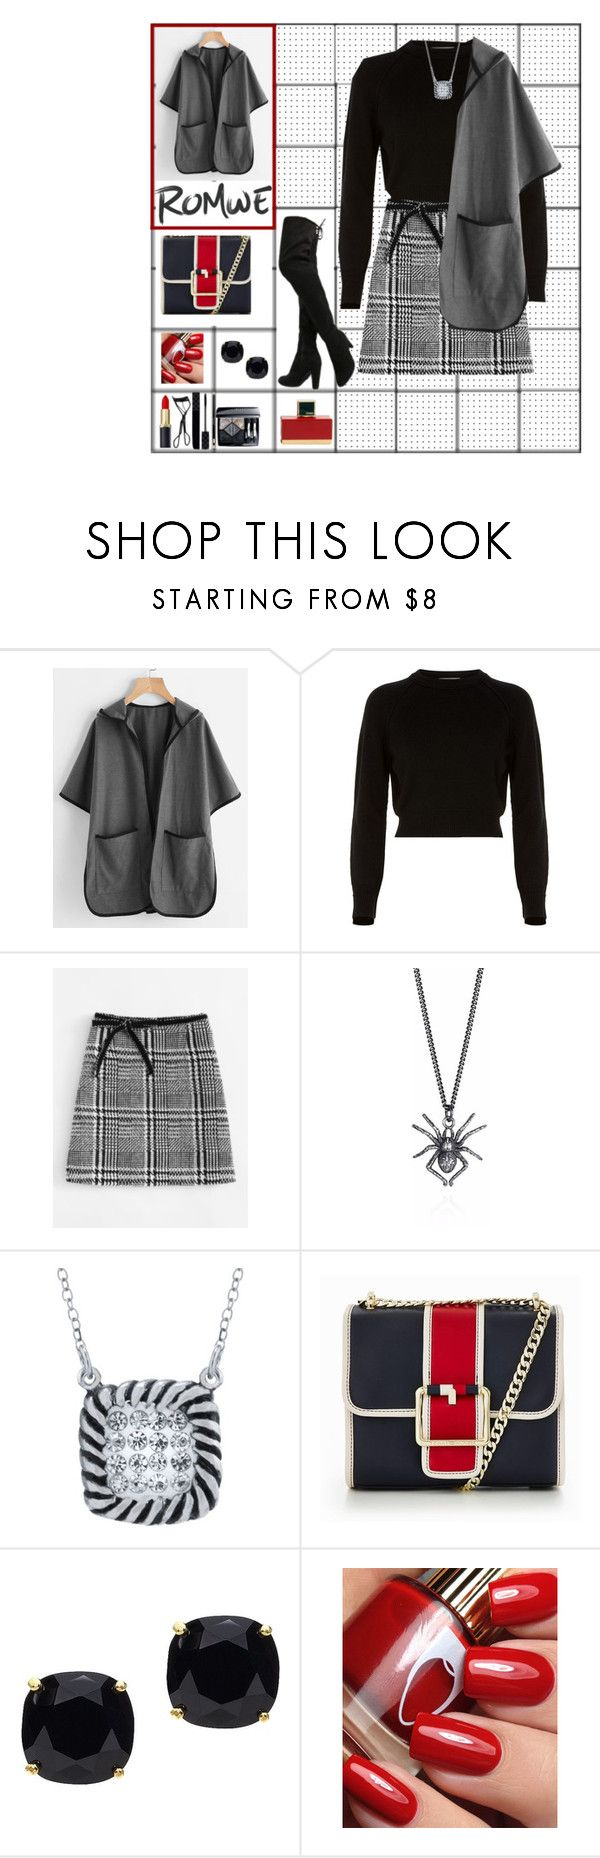 """""""Poncho / lf1"""" by leaff88 ❤ liked on Polyvore featuring Helmut Lang, Belk Silverworks, Tommy Hilfiger, Kate Spade and Fendi"""